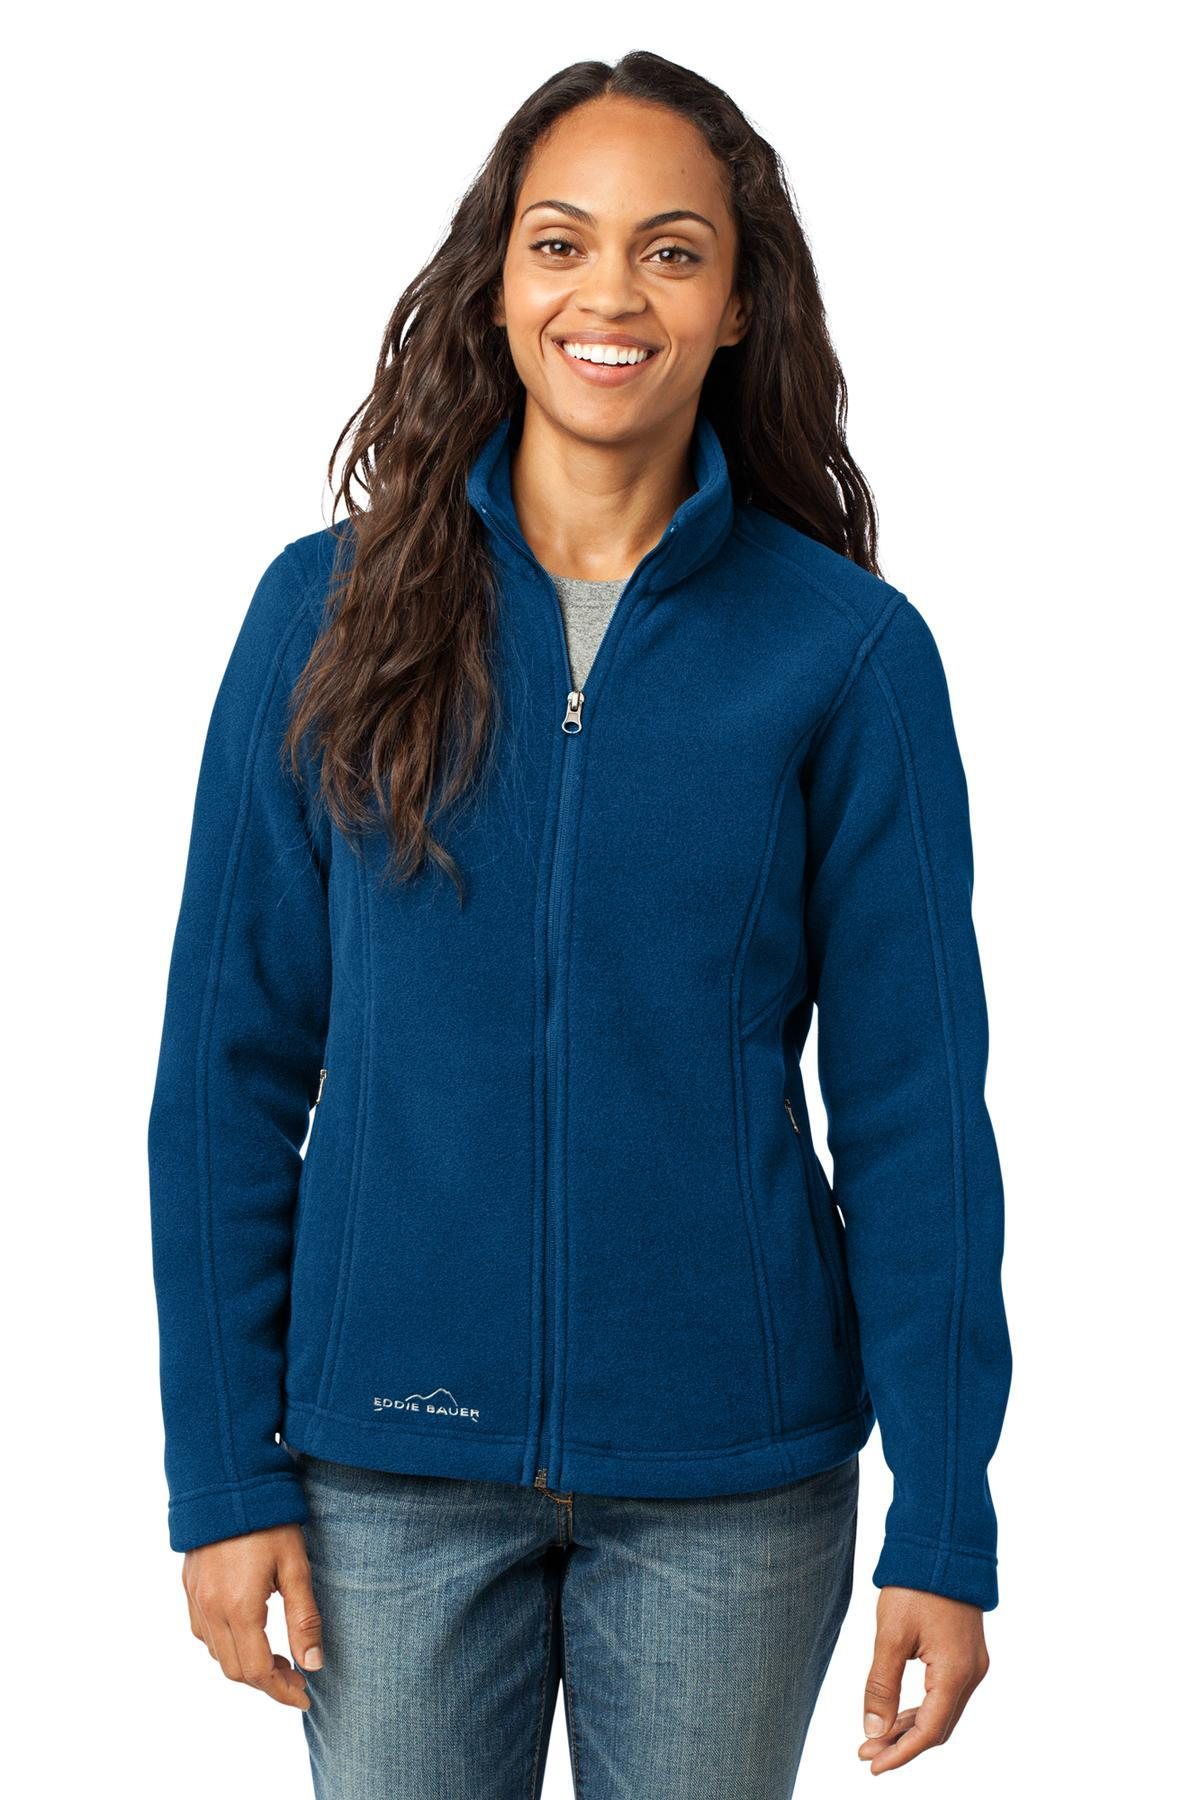 Deep Sea Blue - Eddie Bauer EB201